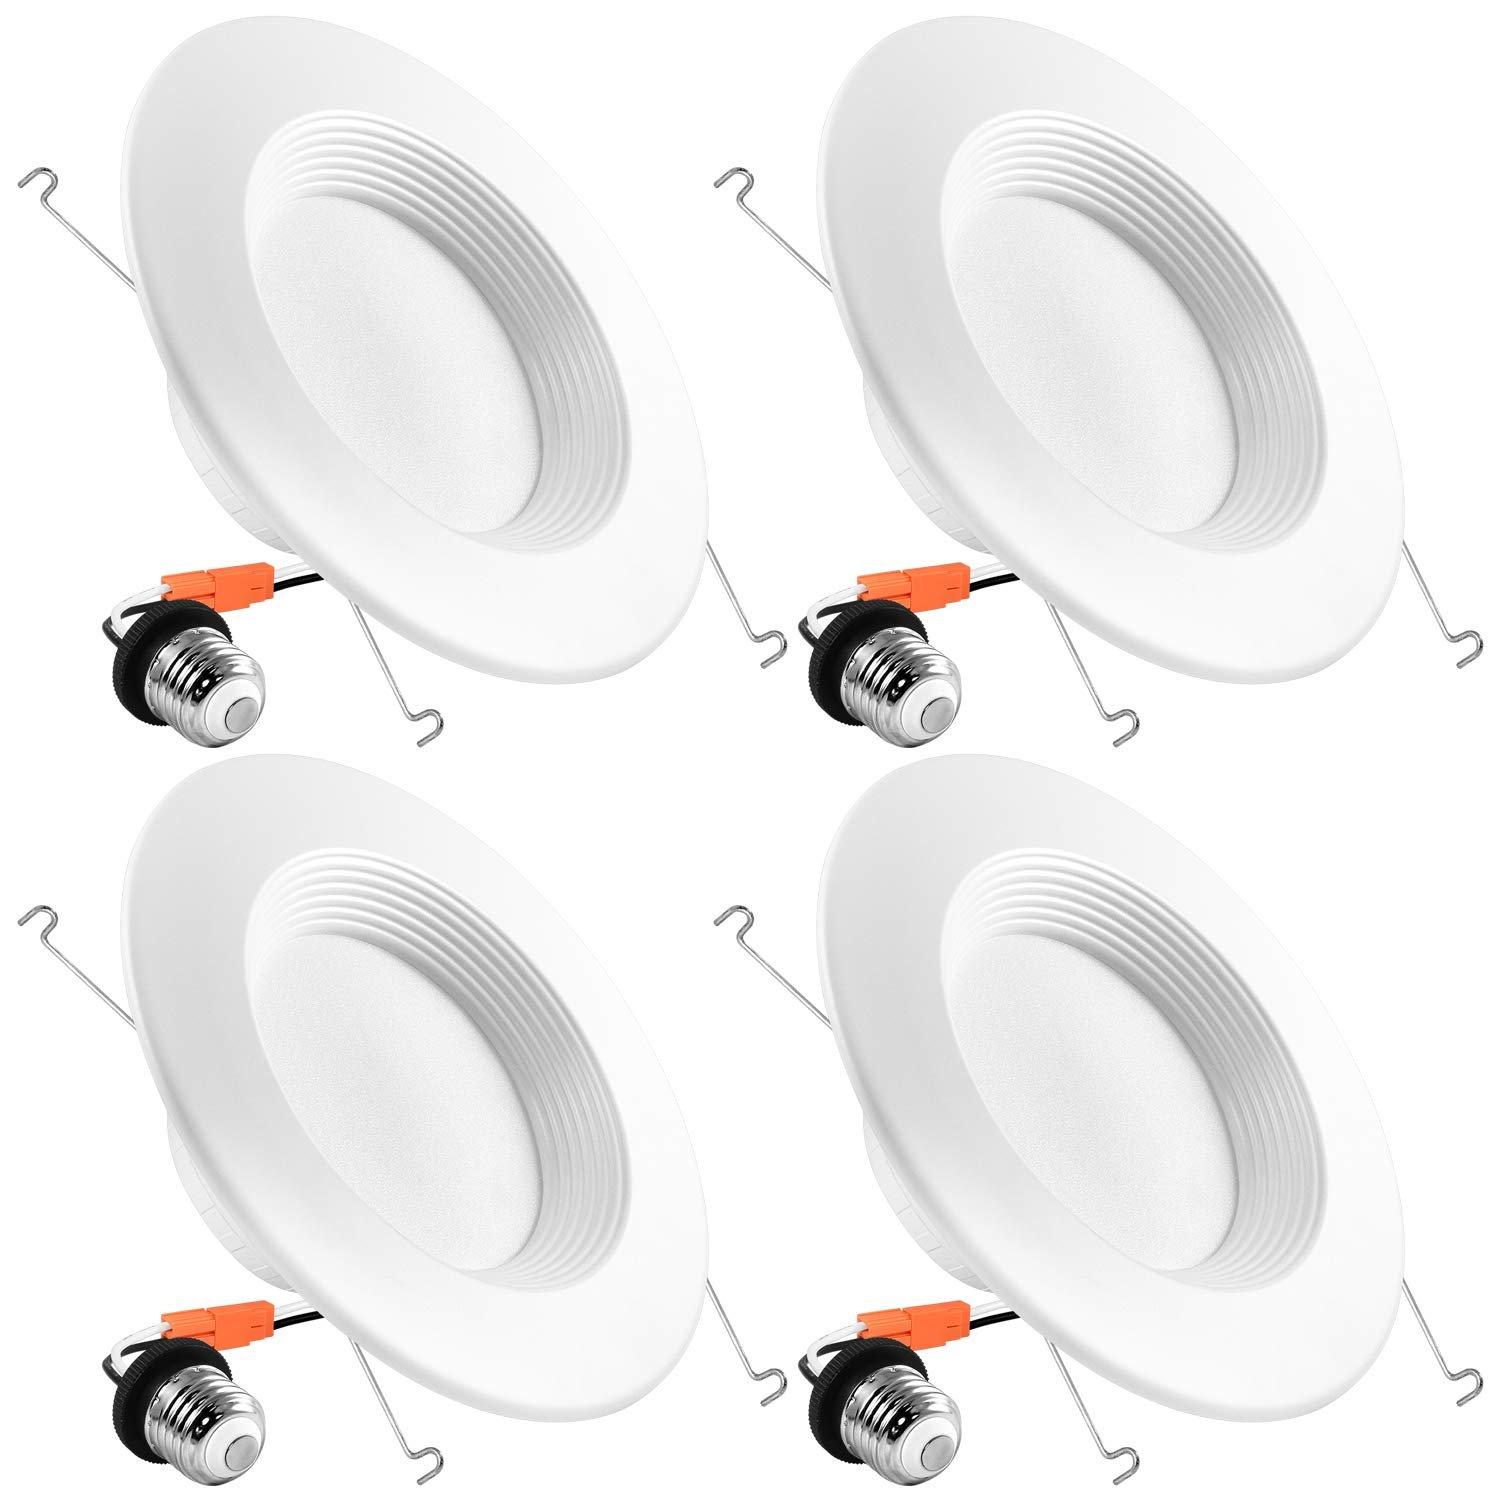 luxrite 5 6 inch led recessed lights dimmable 15w 5000k bright white 1250 lumens retrofit led downlight 120w equivalent dob baffle trim